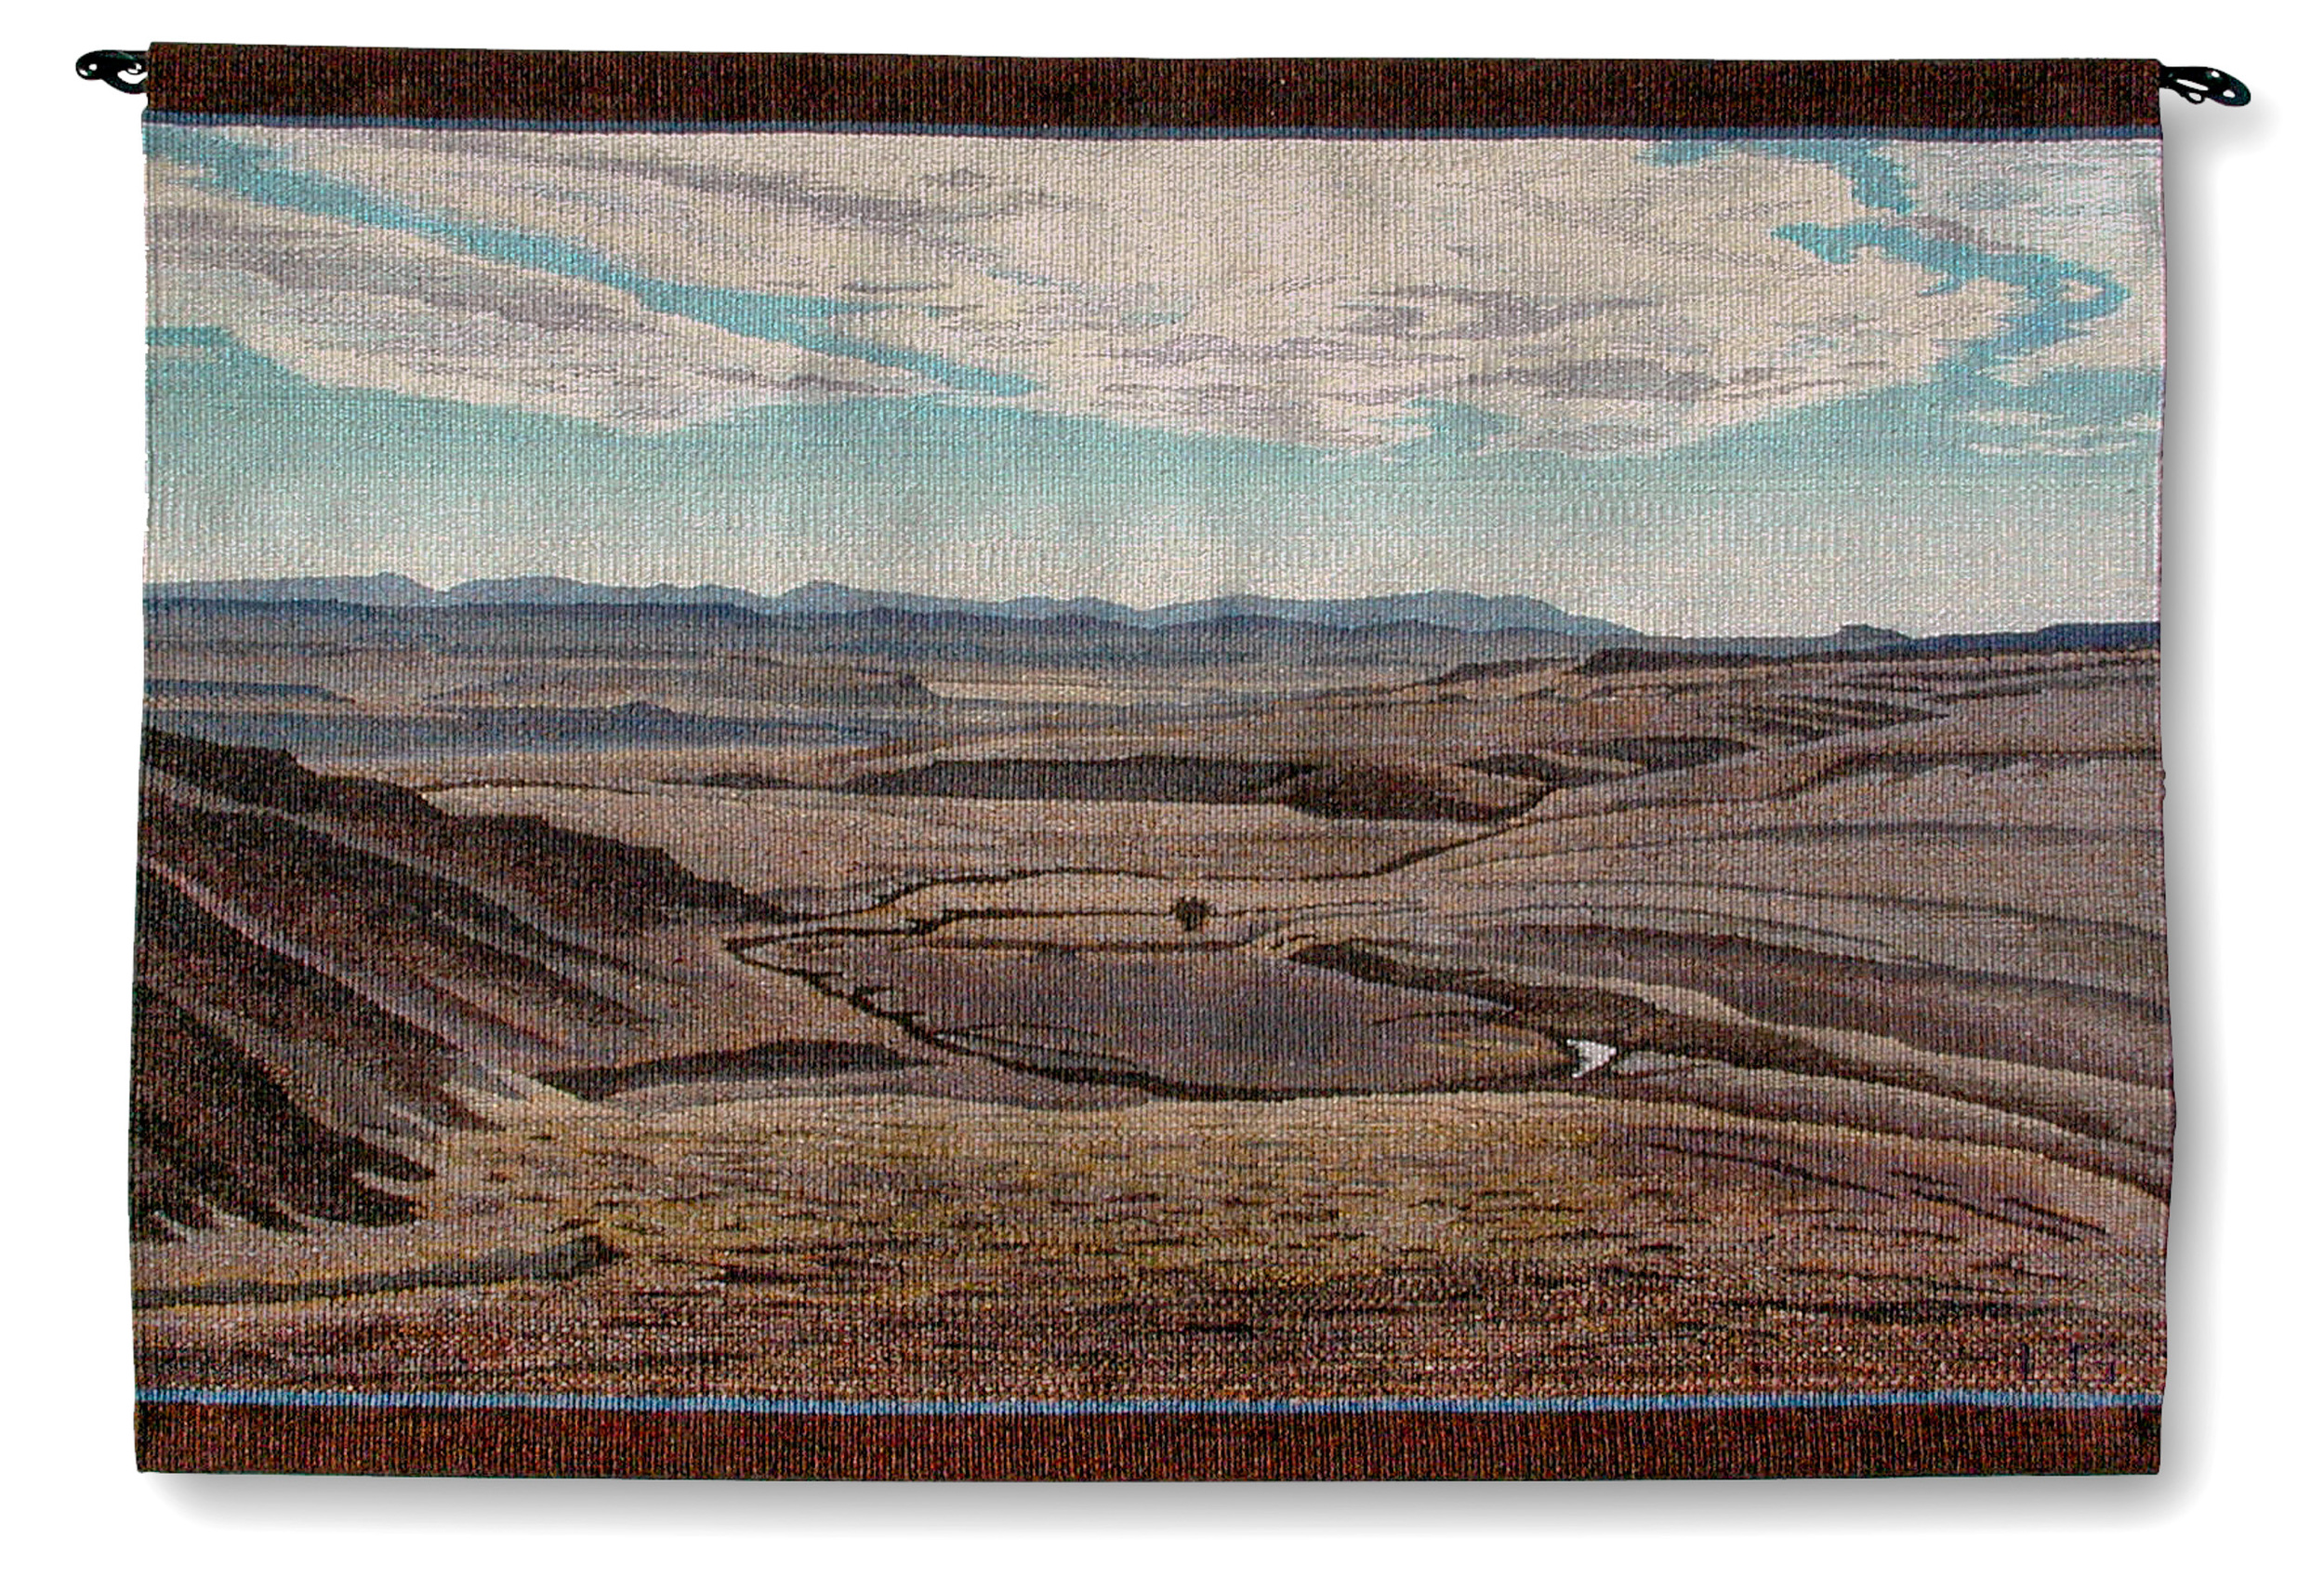 "Fish Creek West, 38"" X 26.5"", $3,200"